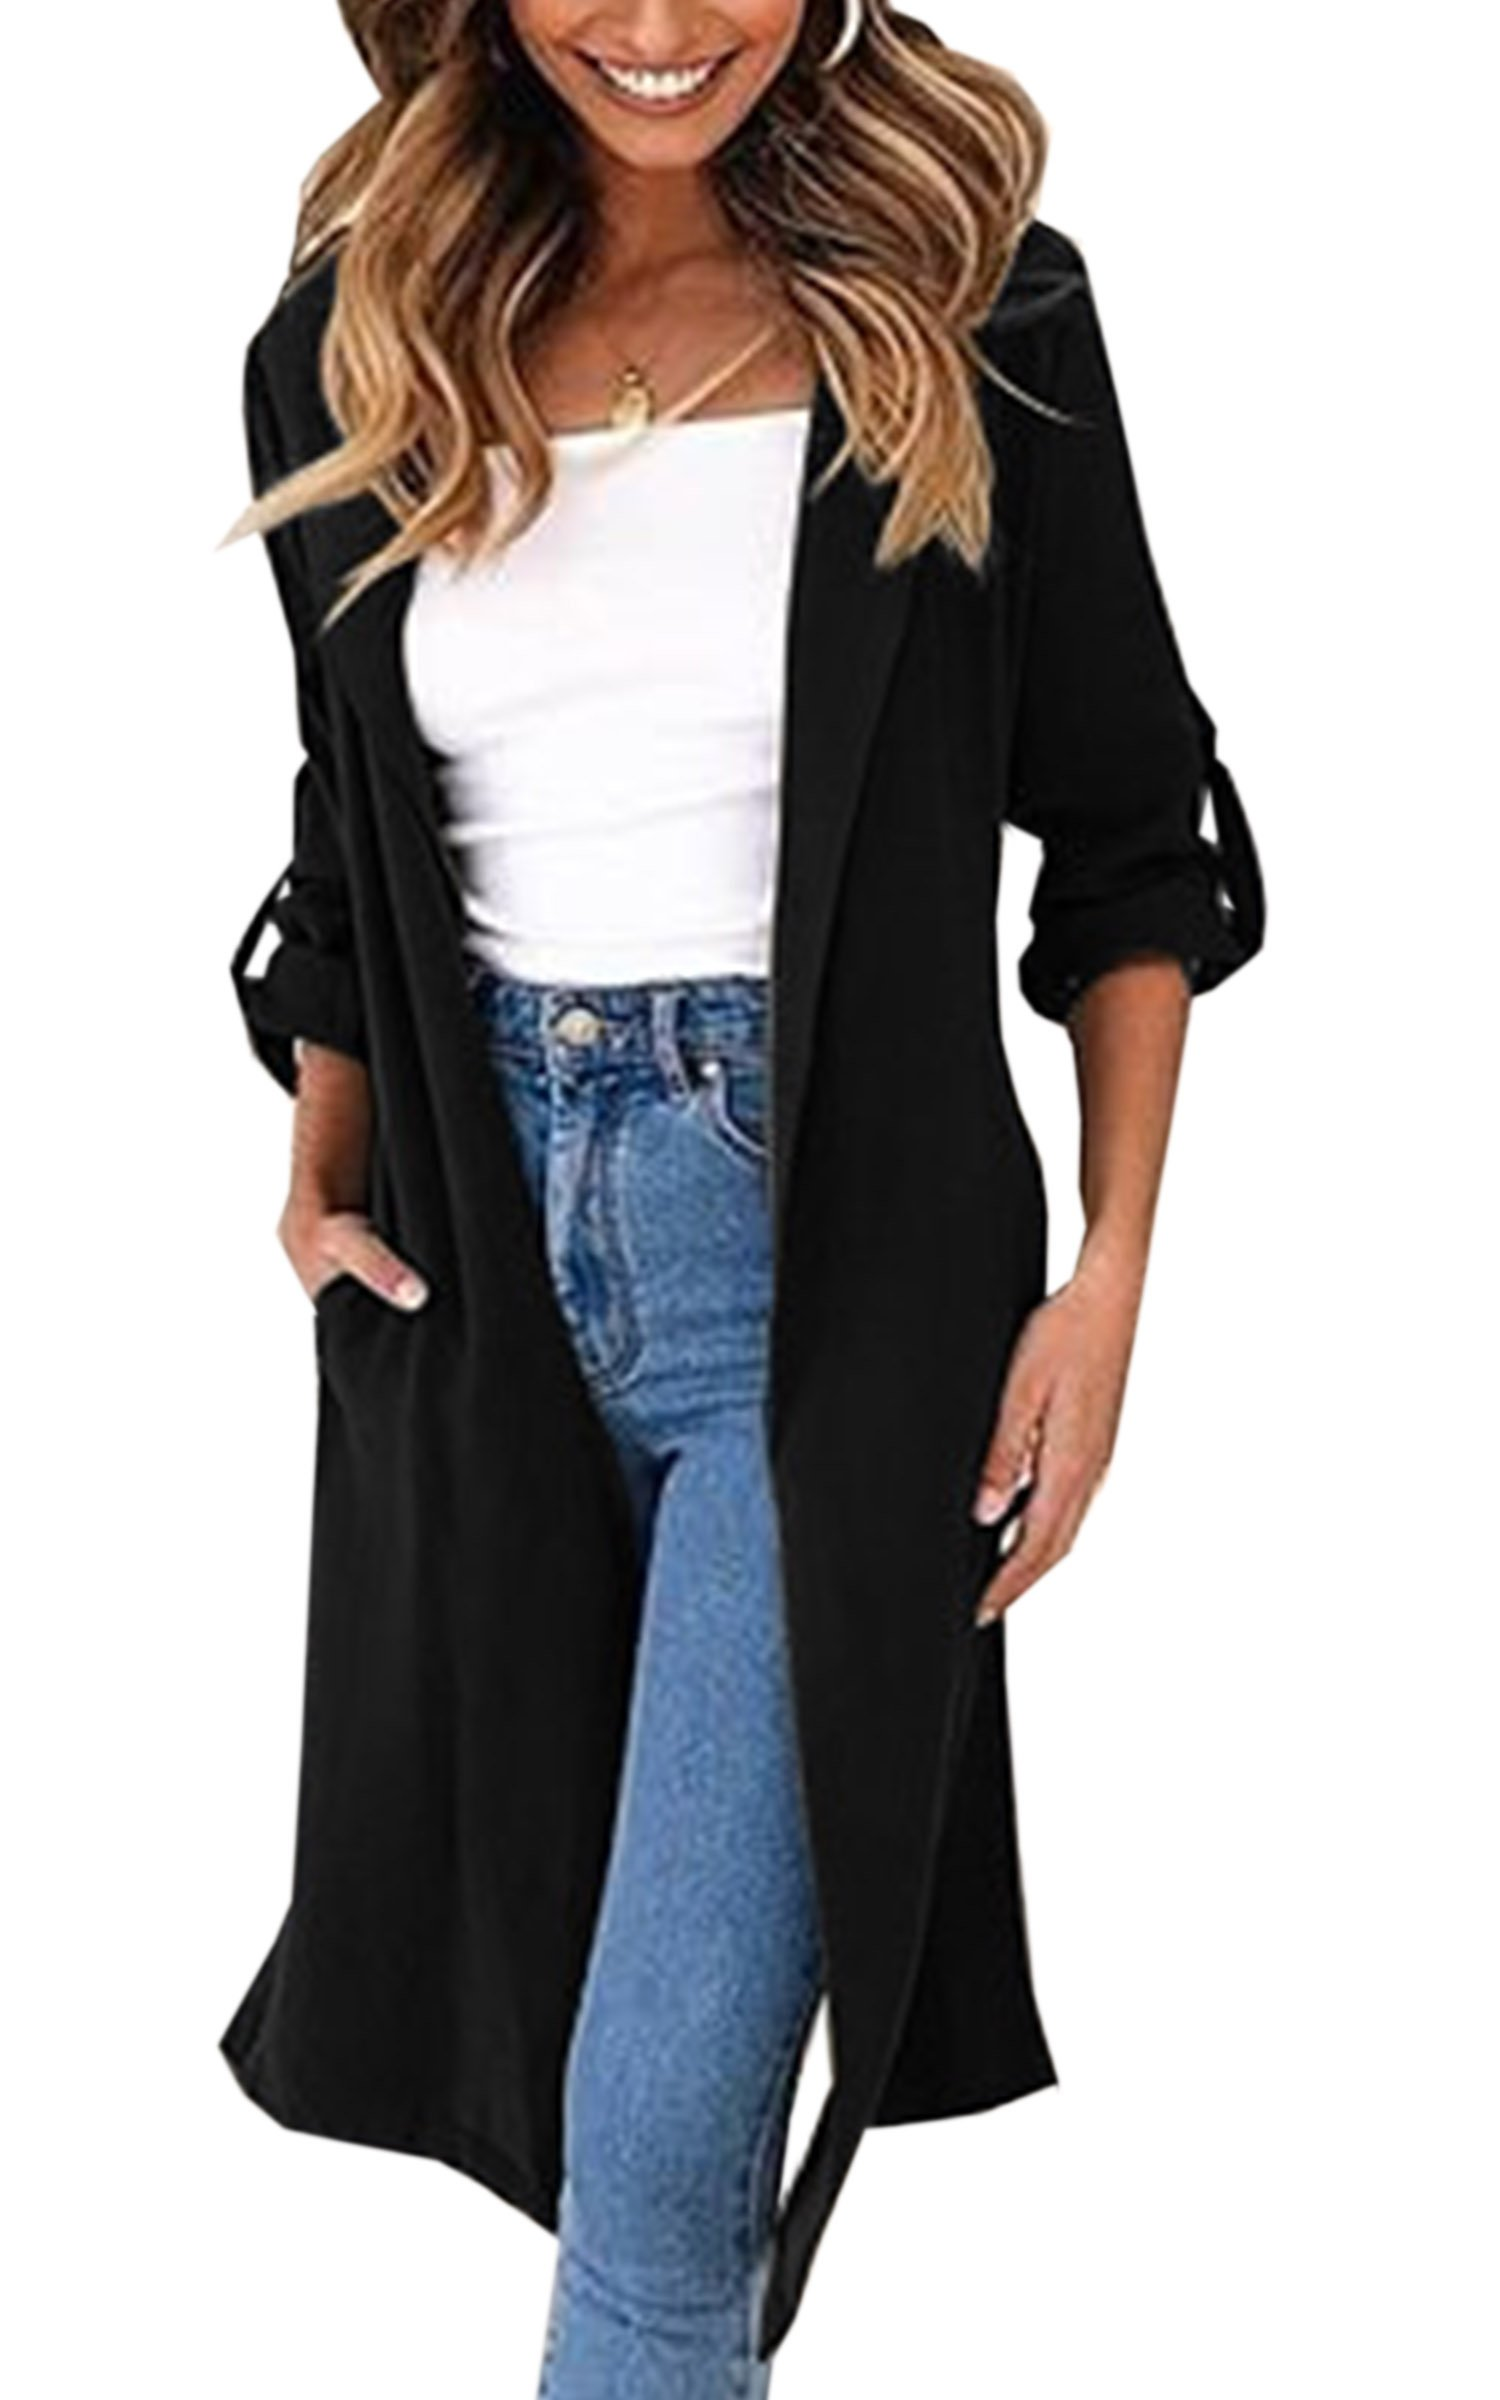 Angashion Women's Lapel Long Roll-up Sleeves Open Front Lapel Long Cardiagn Trench Coat Tops with Pockets Black L